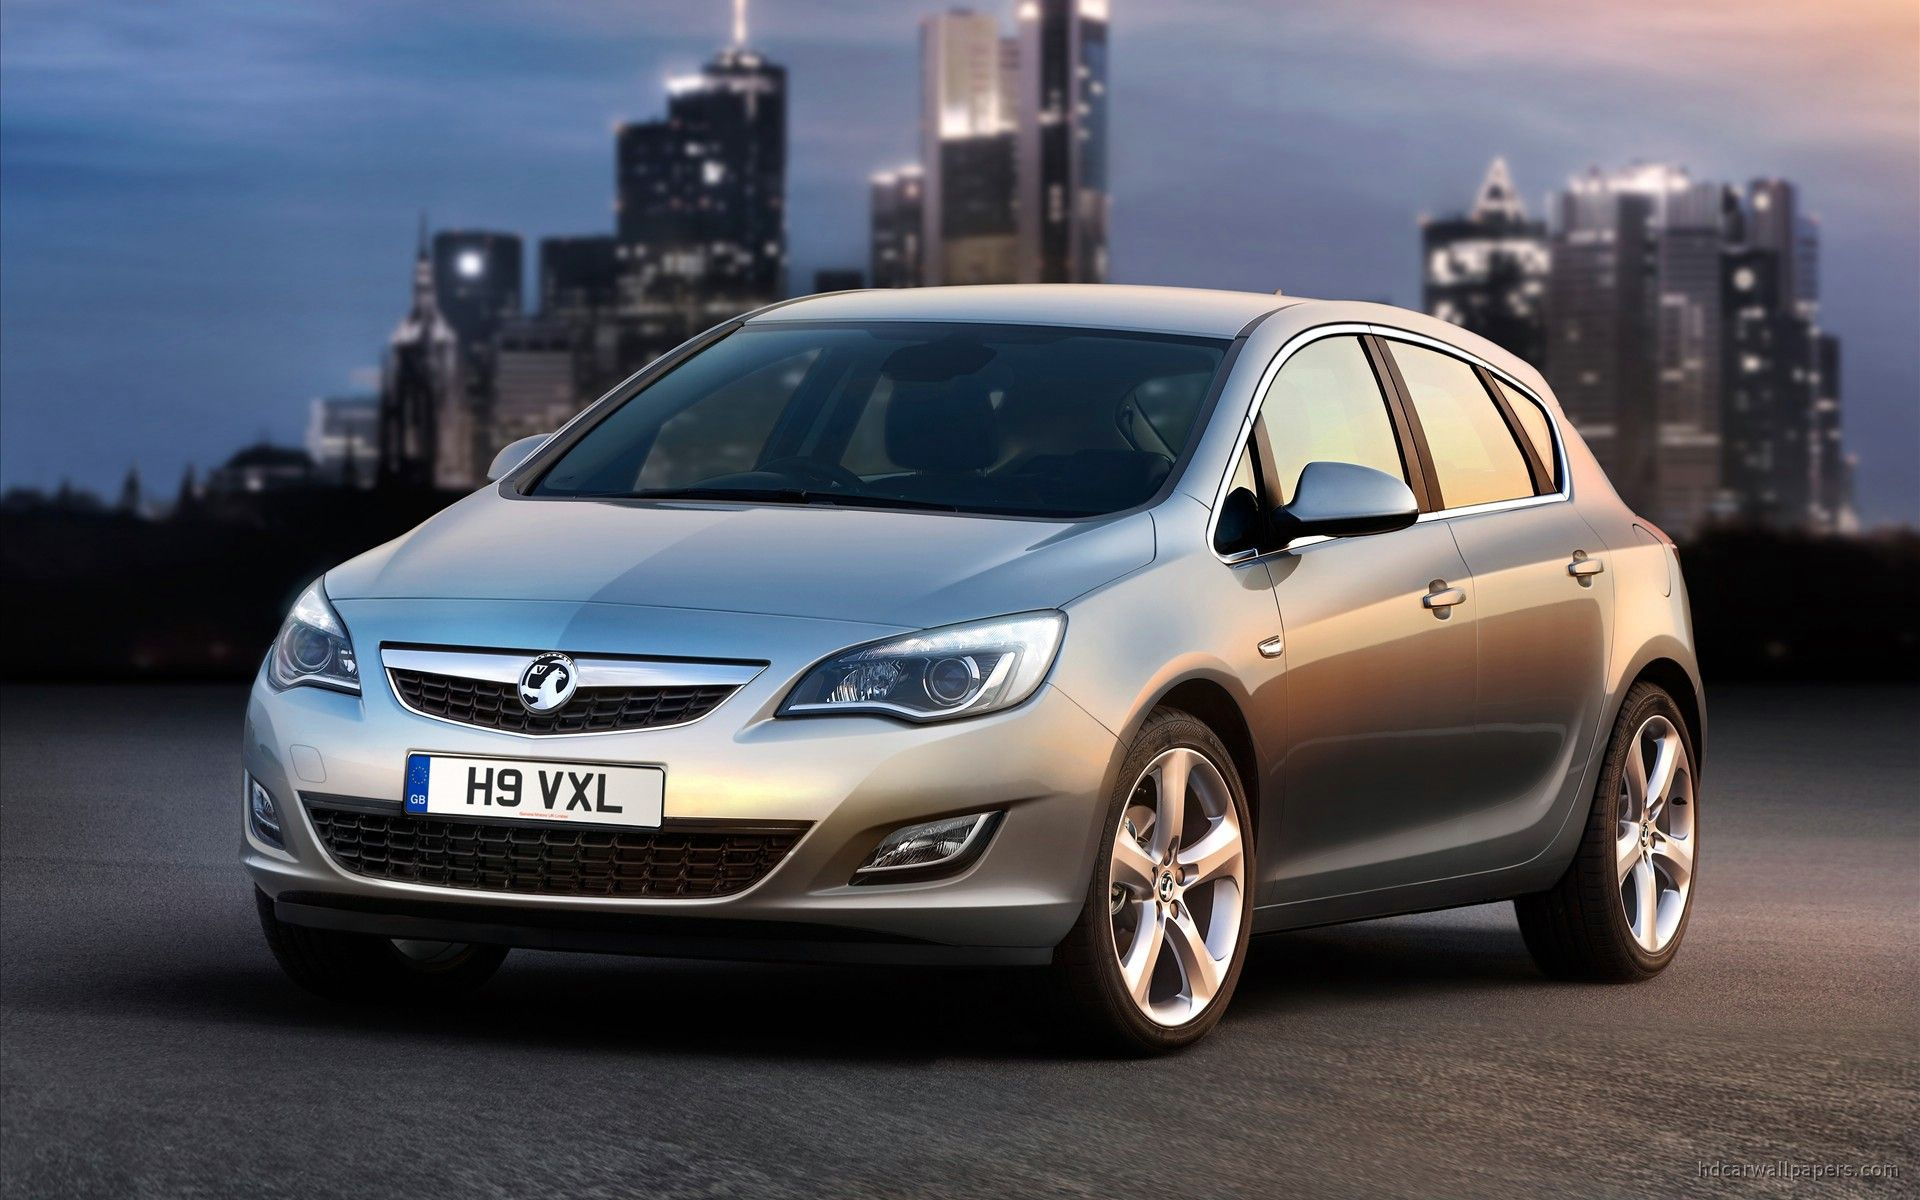 2010_vauxhall_astra Contact This For Rental Sports Car  Http://www.bravorentacardubai.com